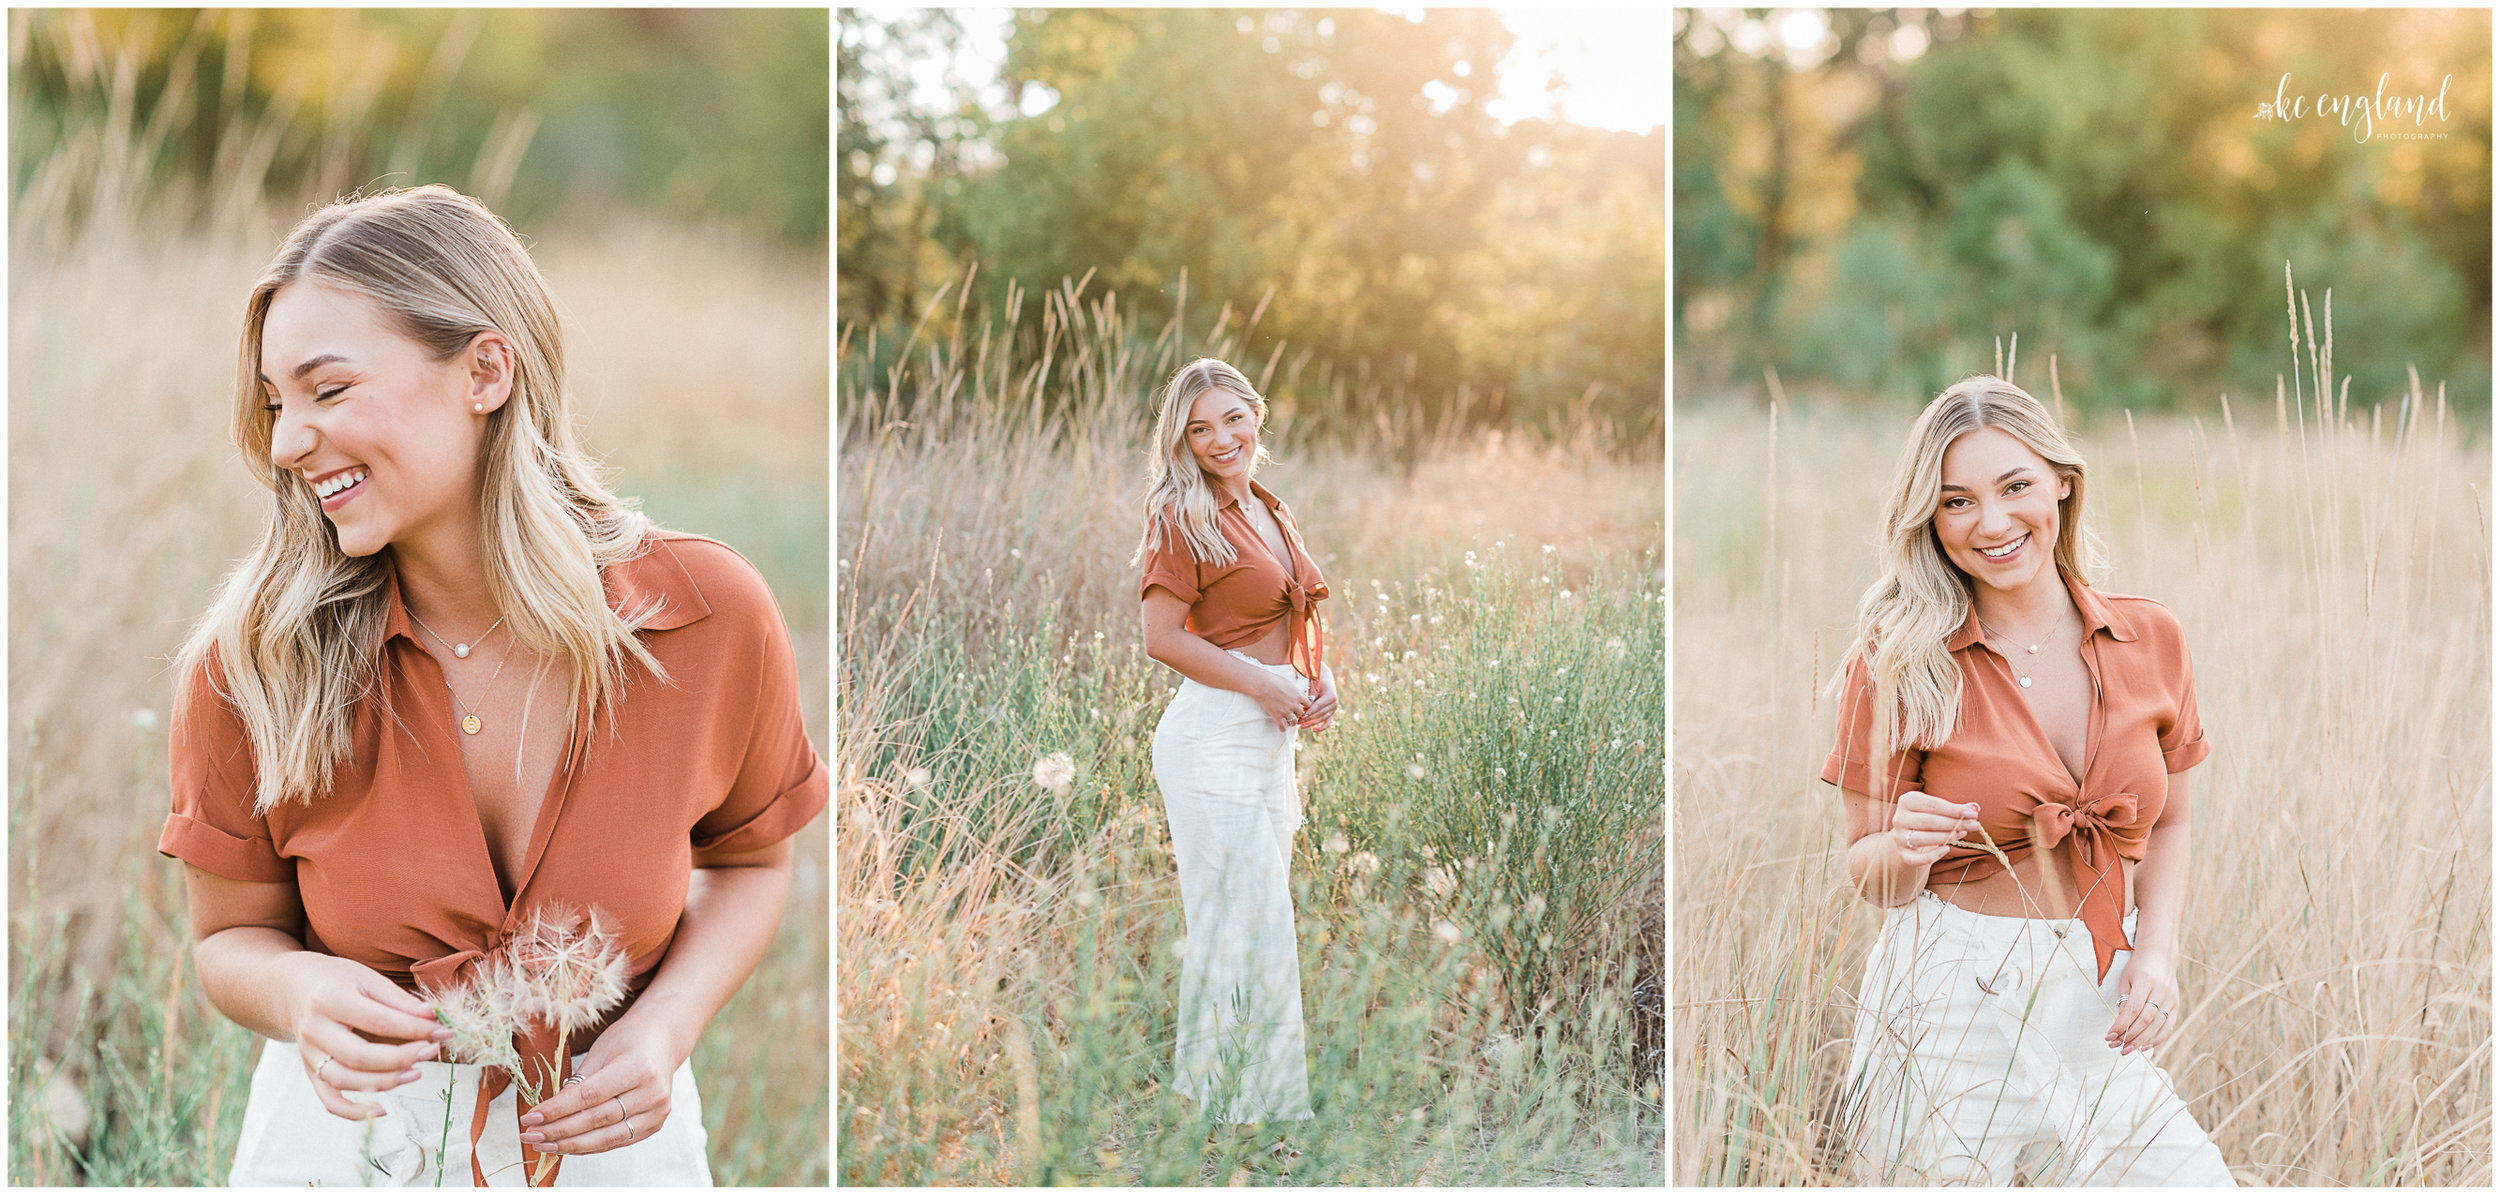 Spokane Senior Photographer - KC England